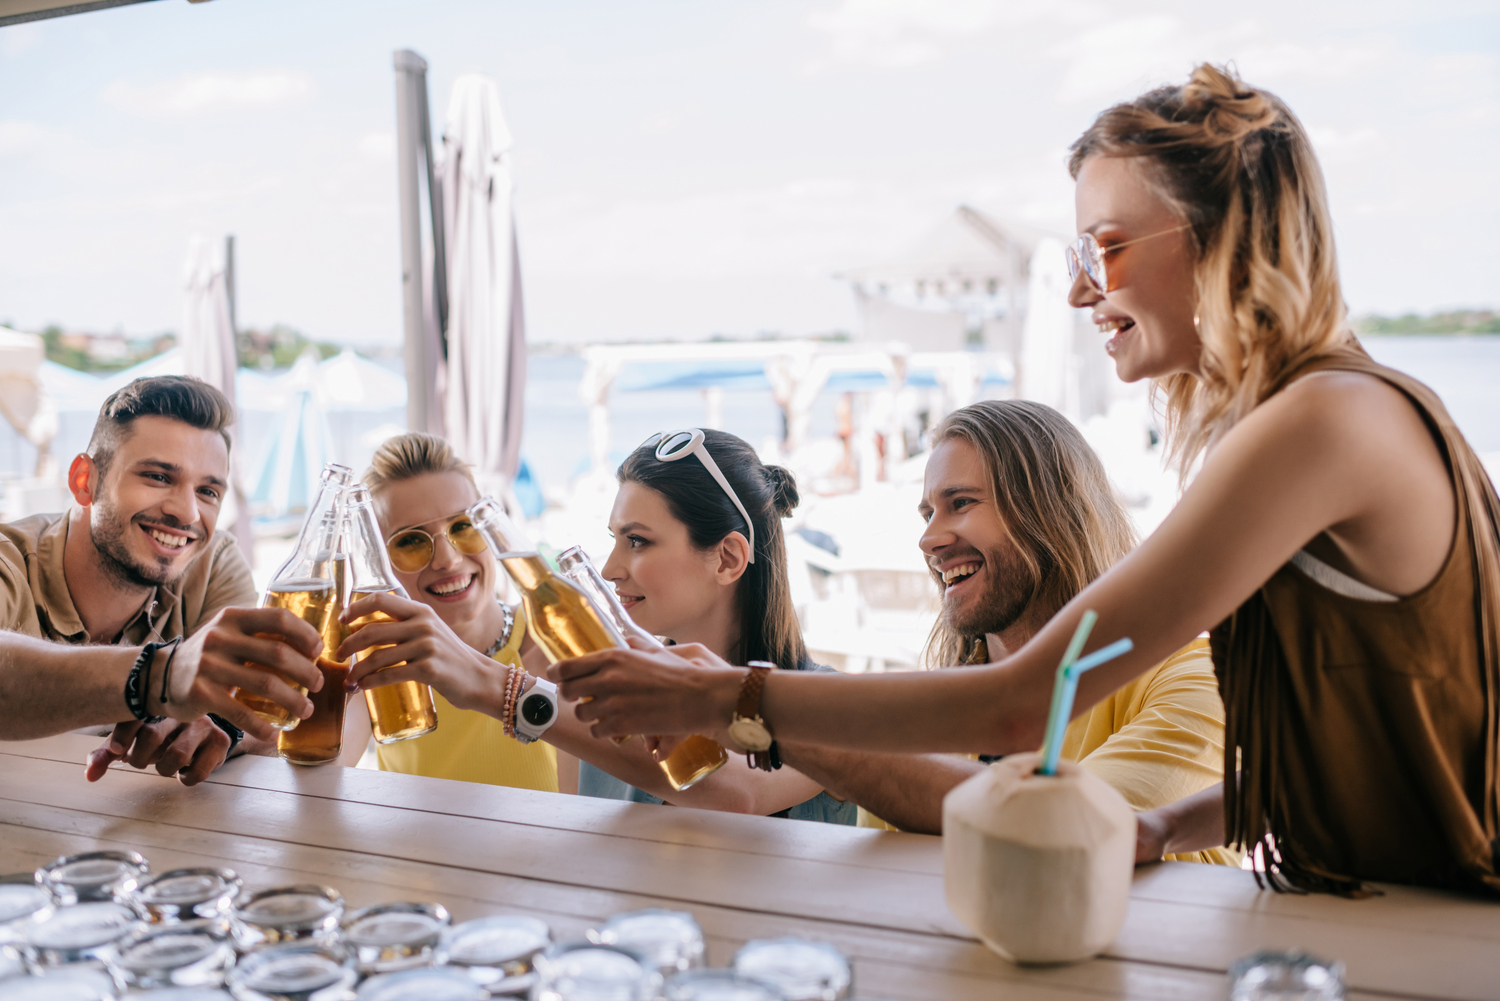 Five young friends clinking beer bottles at a beachside bar in Bali